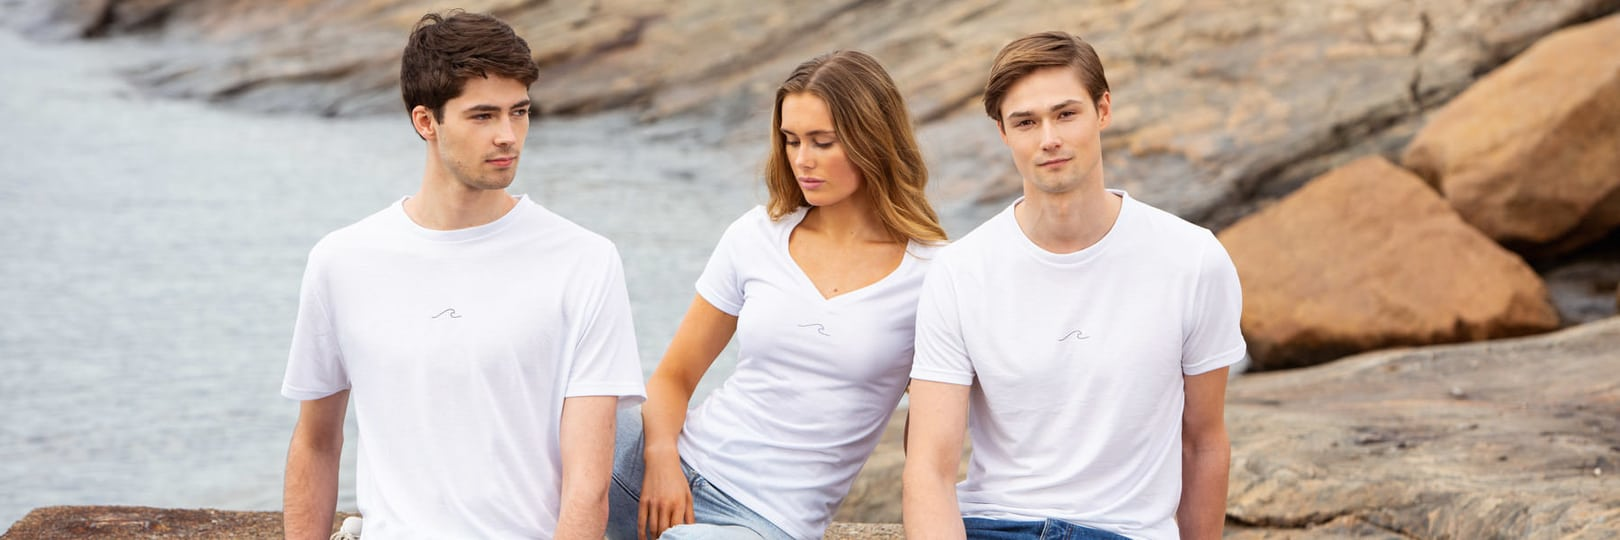 Woman and man in Eco Oceanness T-Shirt in Arctic White